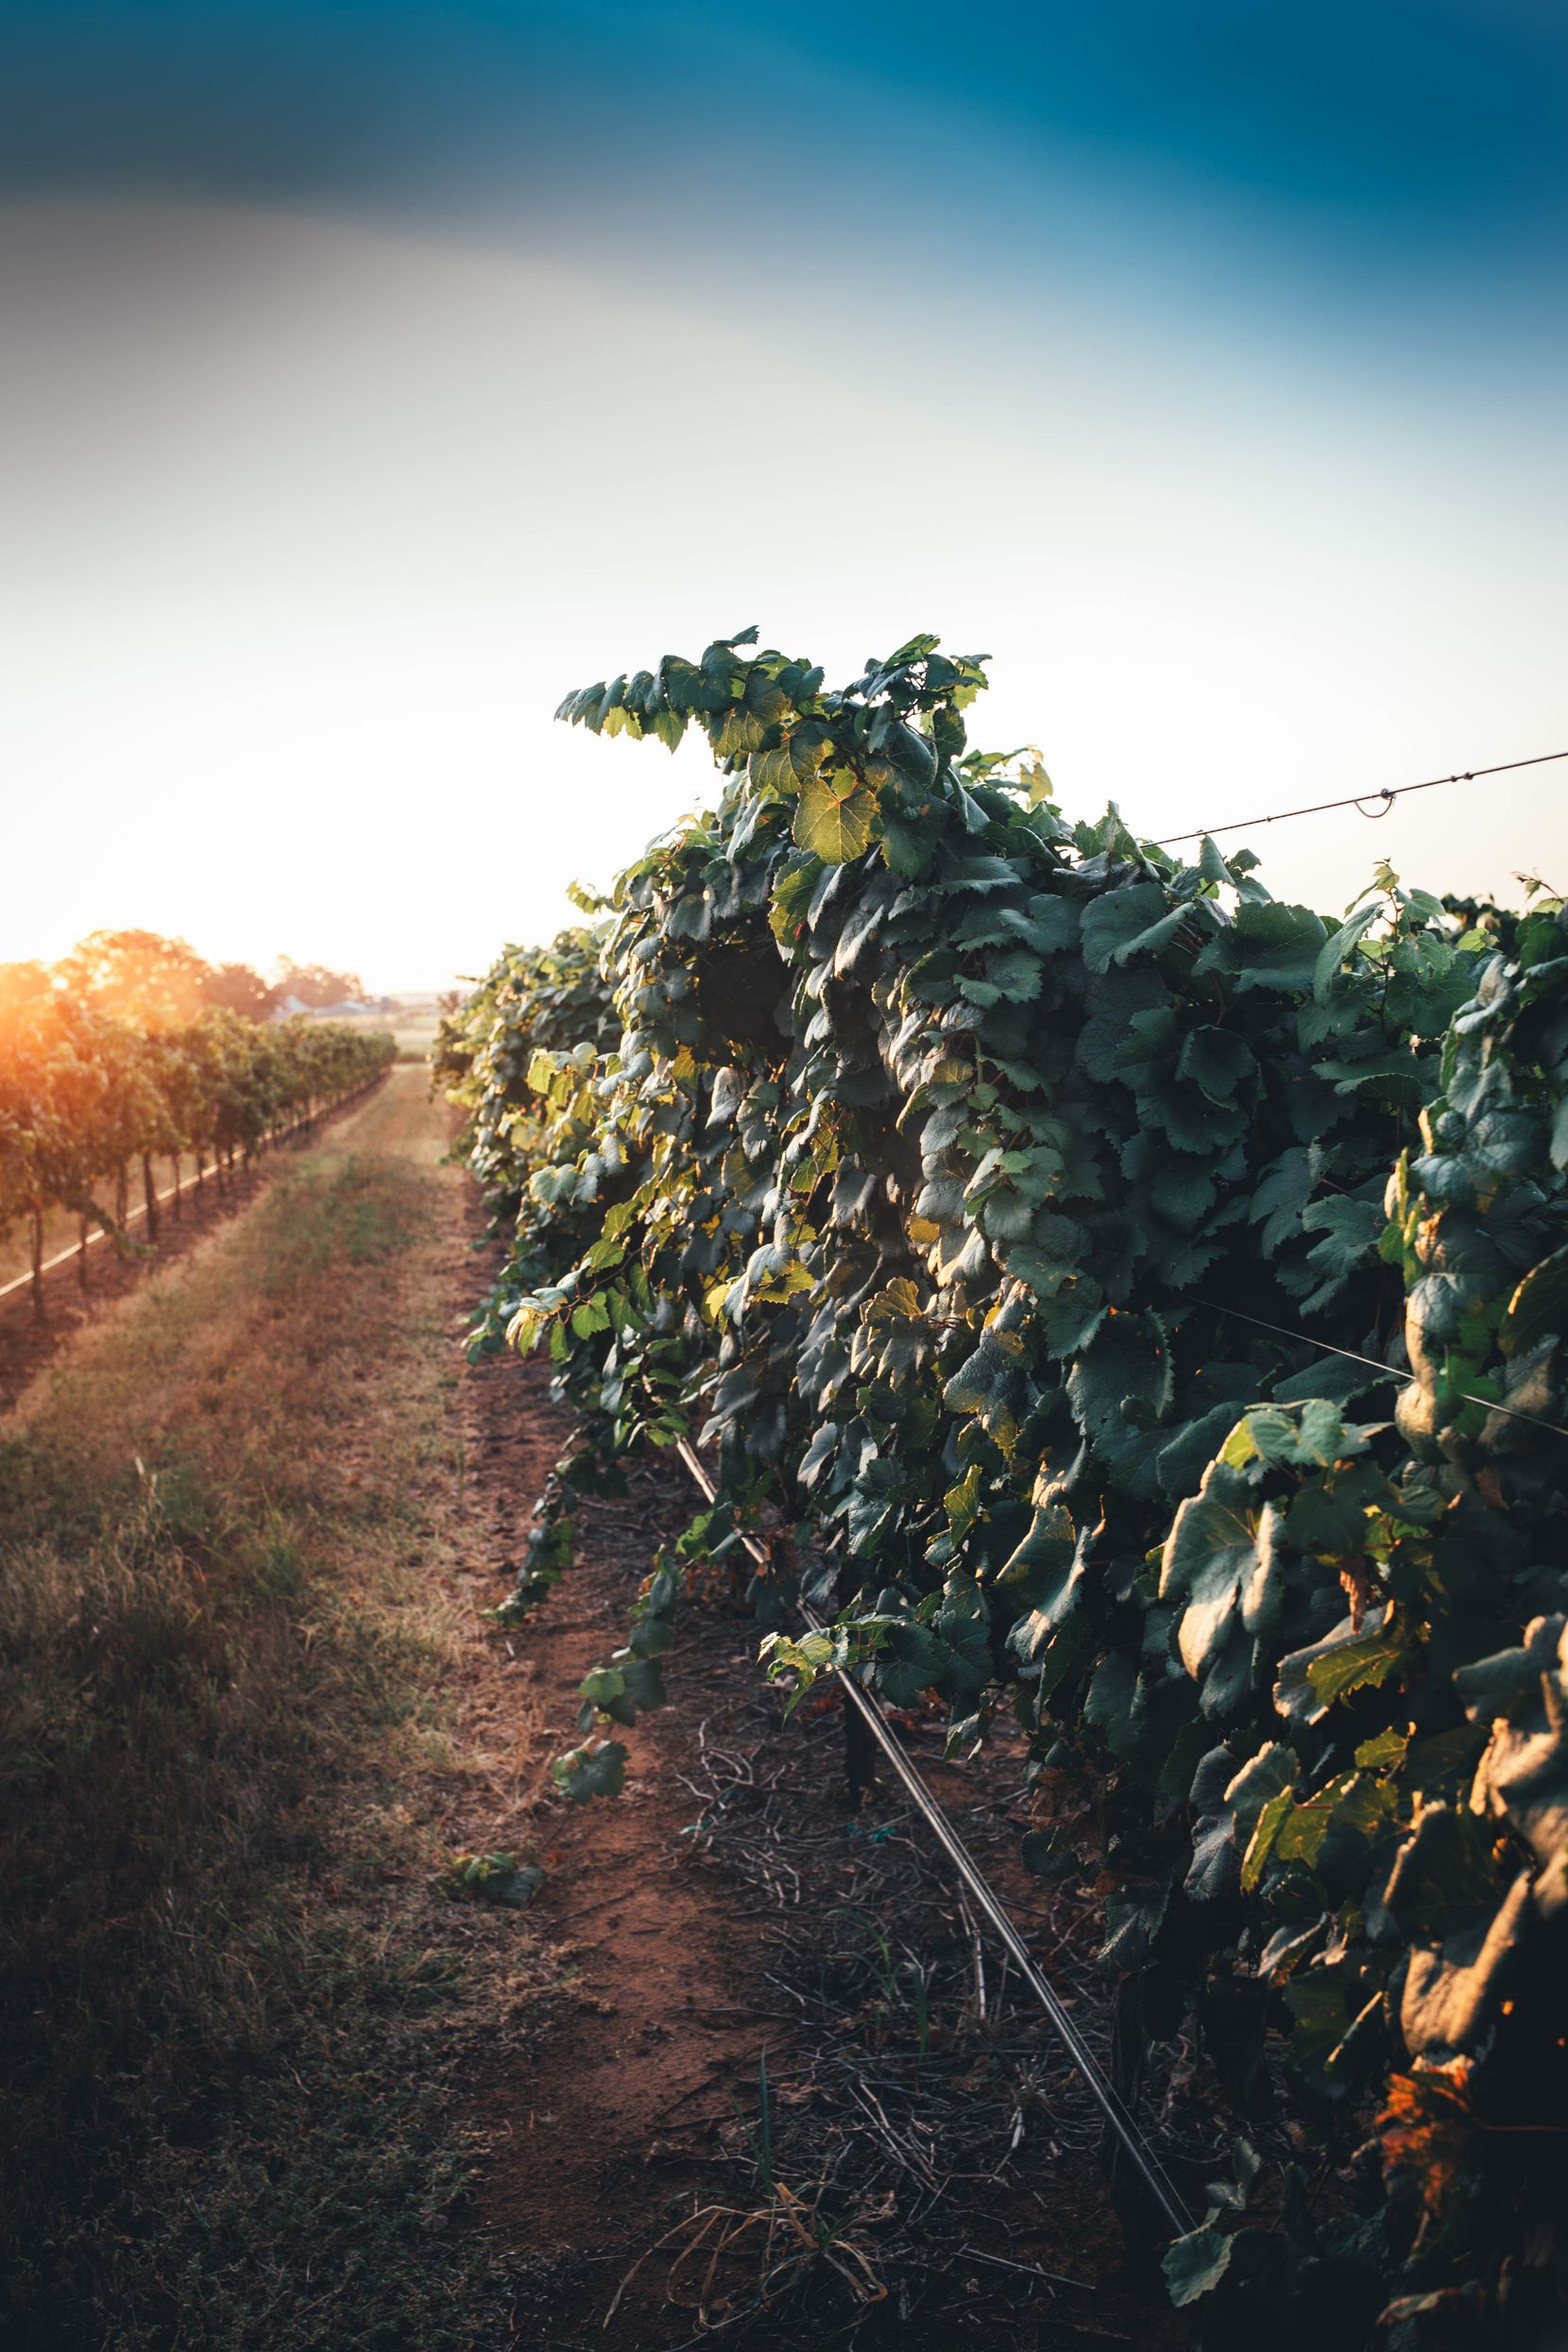 Tallent Vineyards is where Bending Branch Winery sources their grapes.